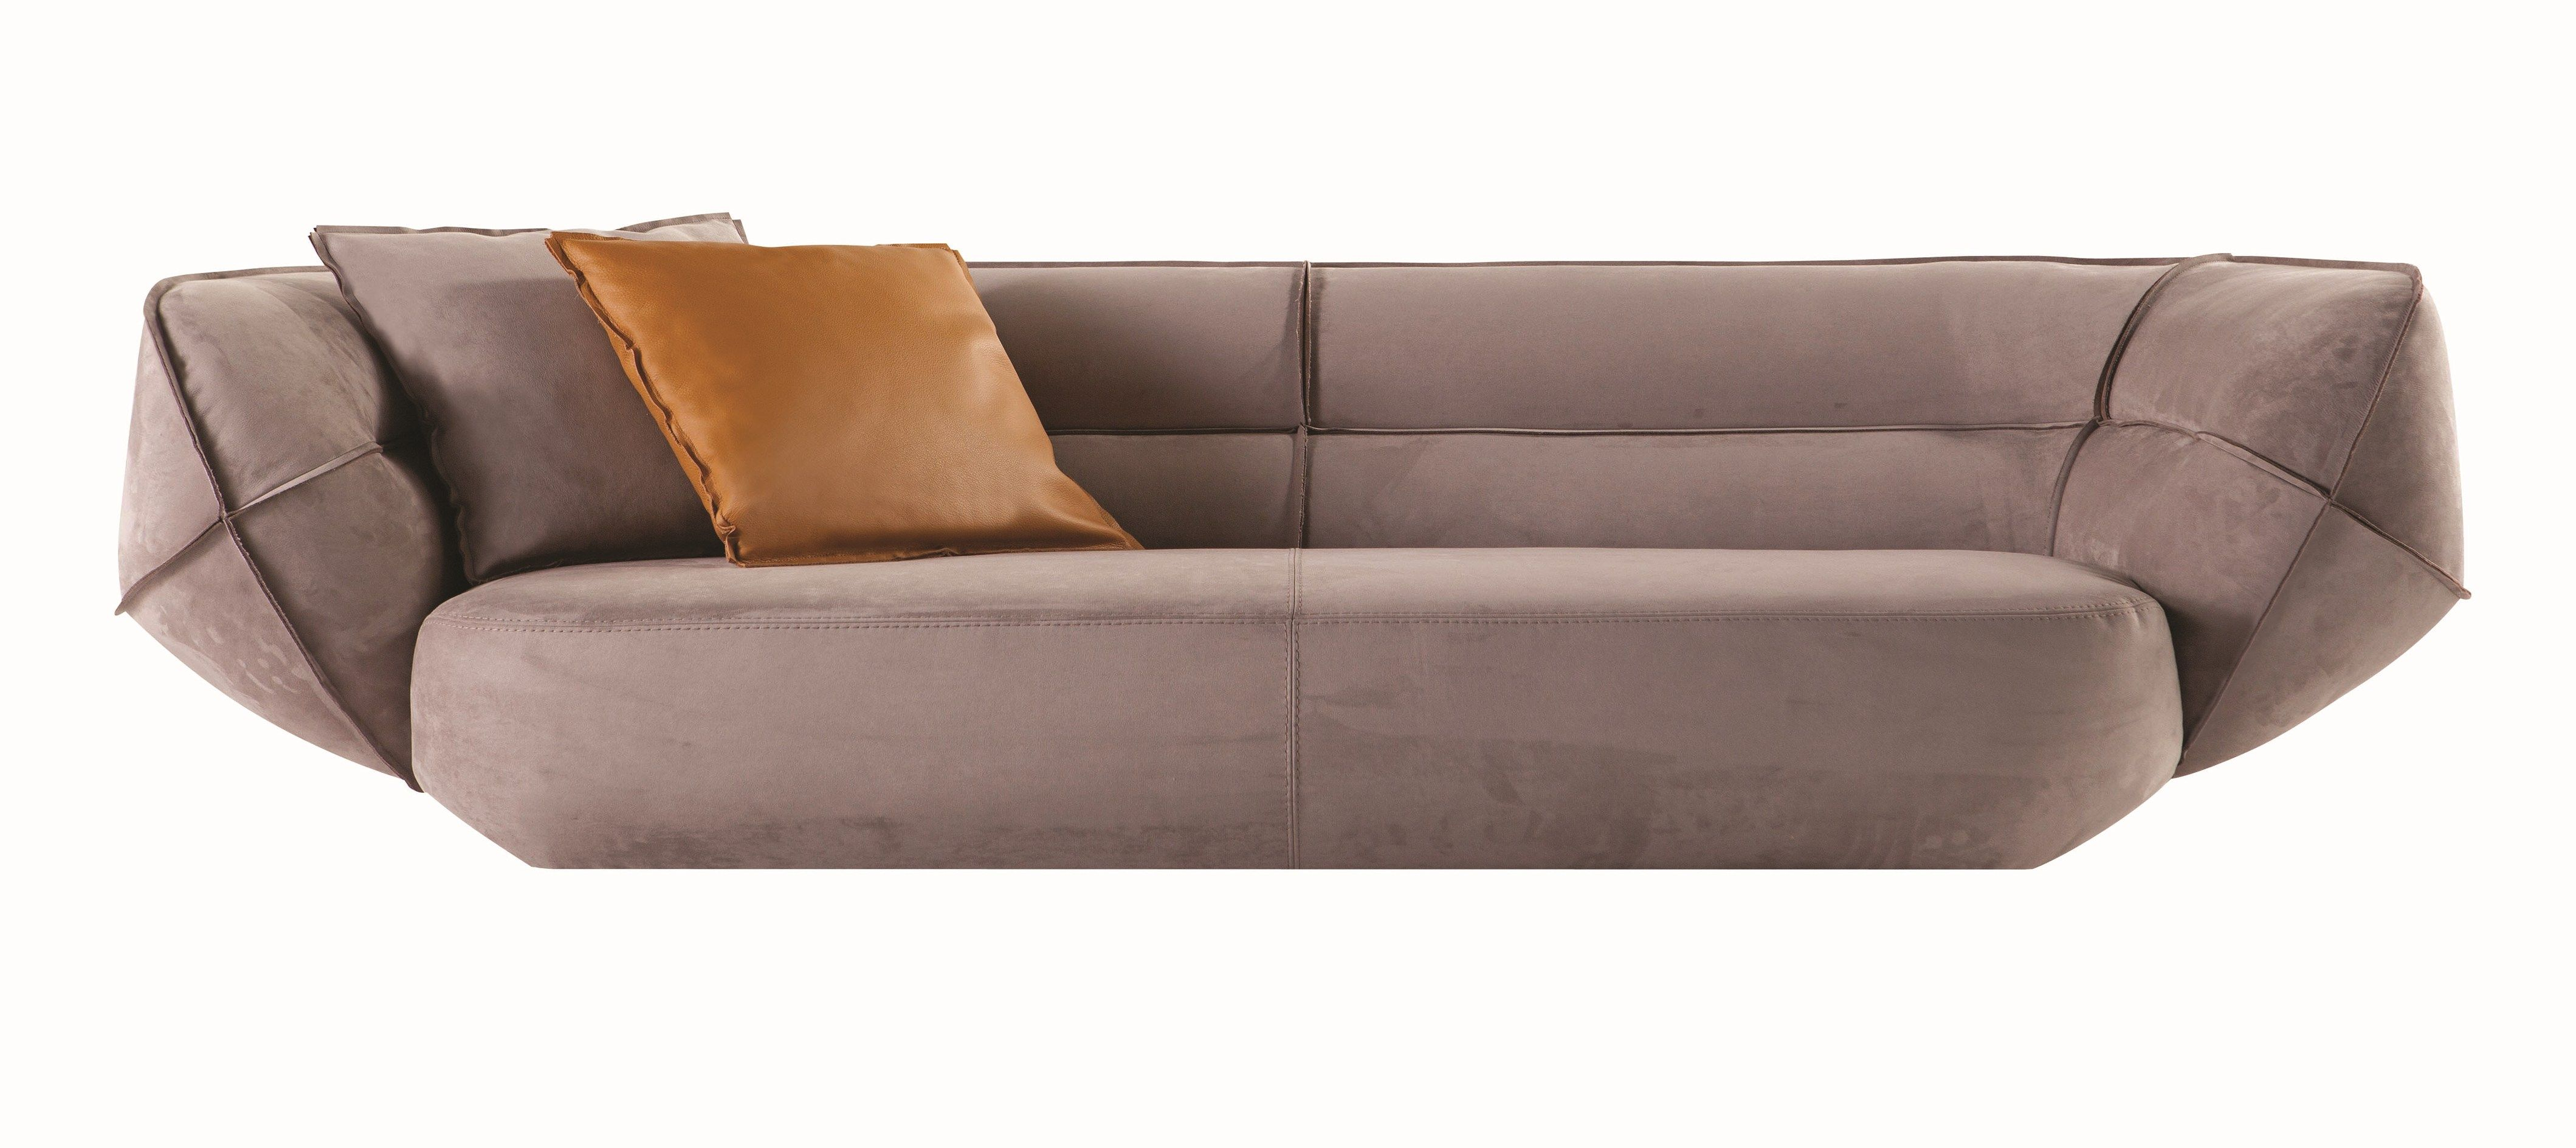 Upholstered Fabric Sofa Ace By Roche Bobois - Design Christophe